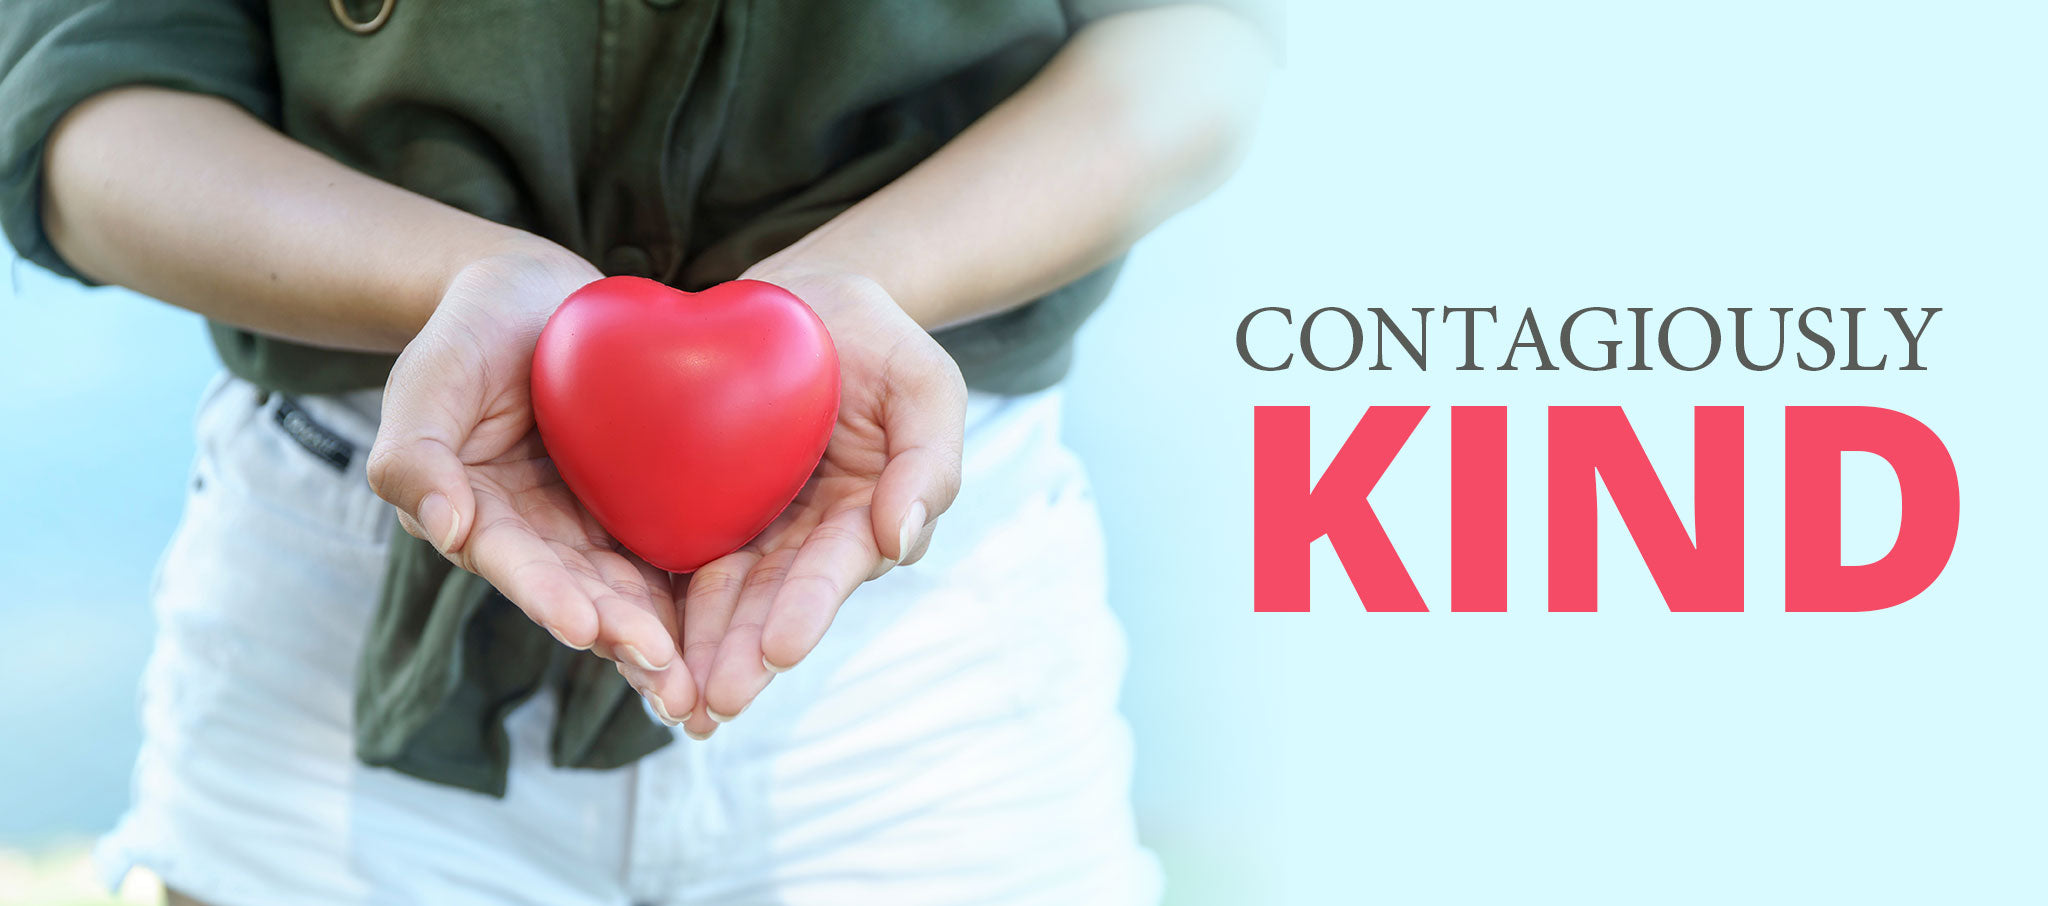 Contagiously Kind - woman holding heart